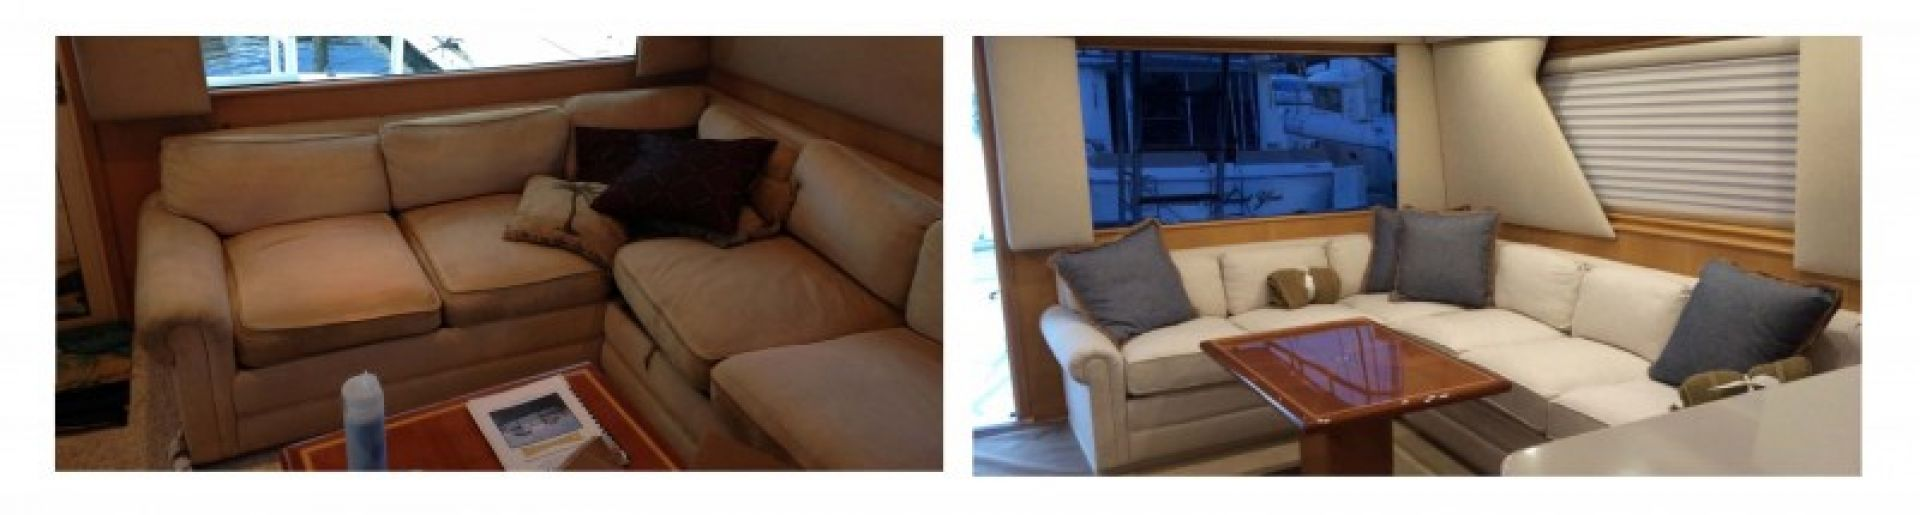 Sofa – Before/After